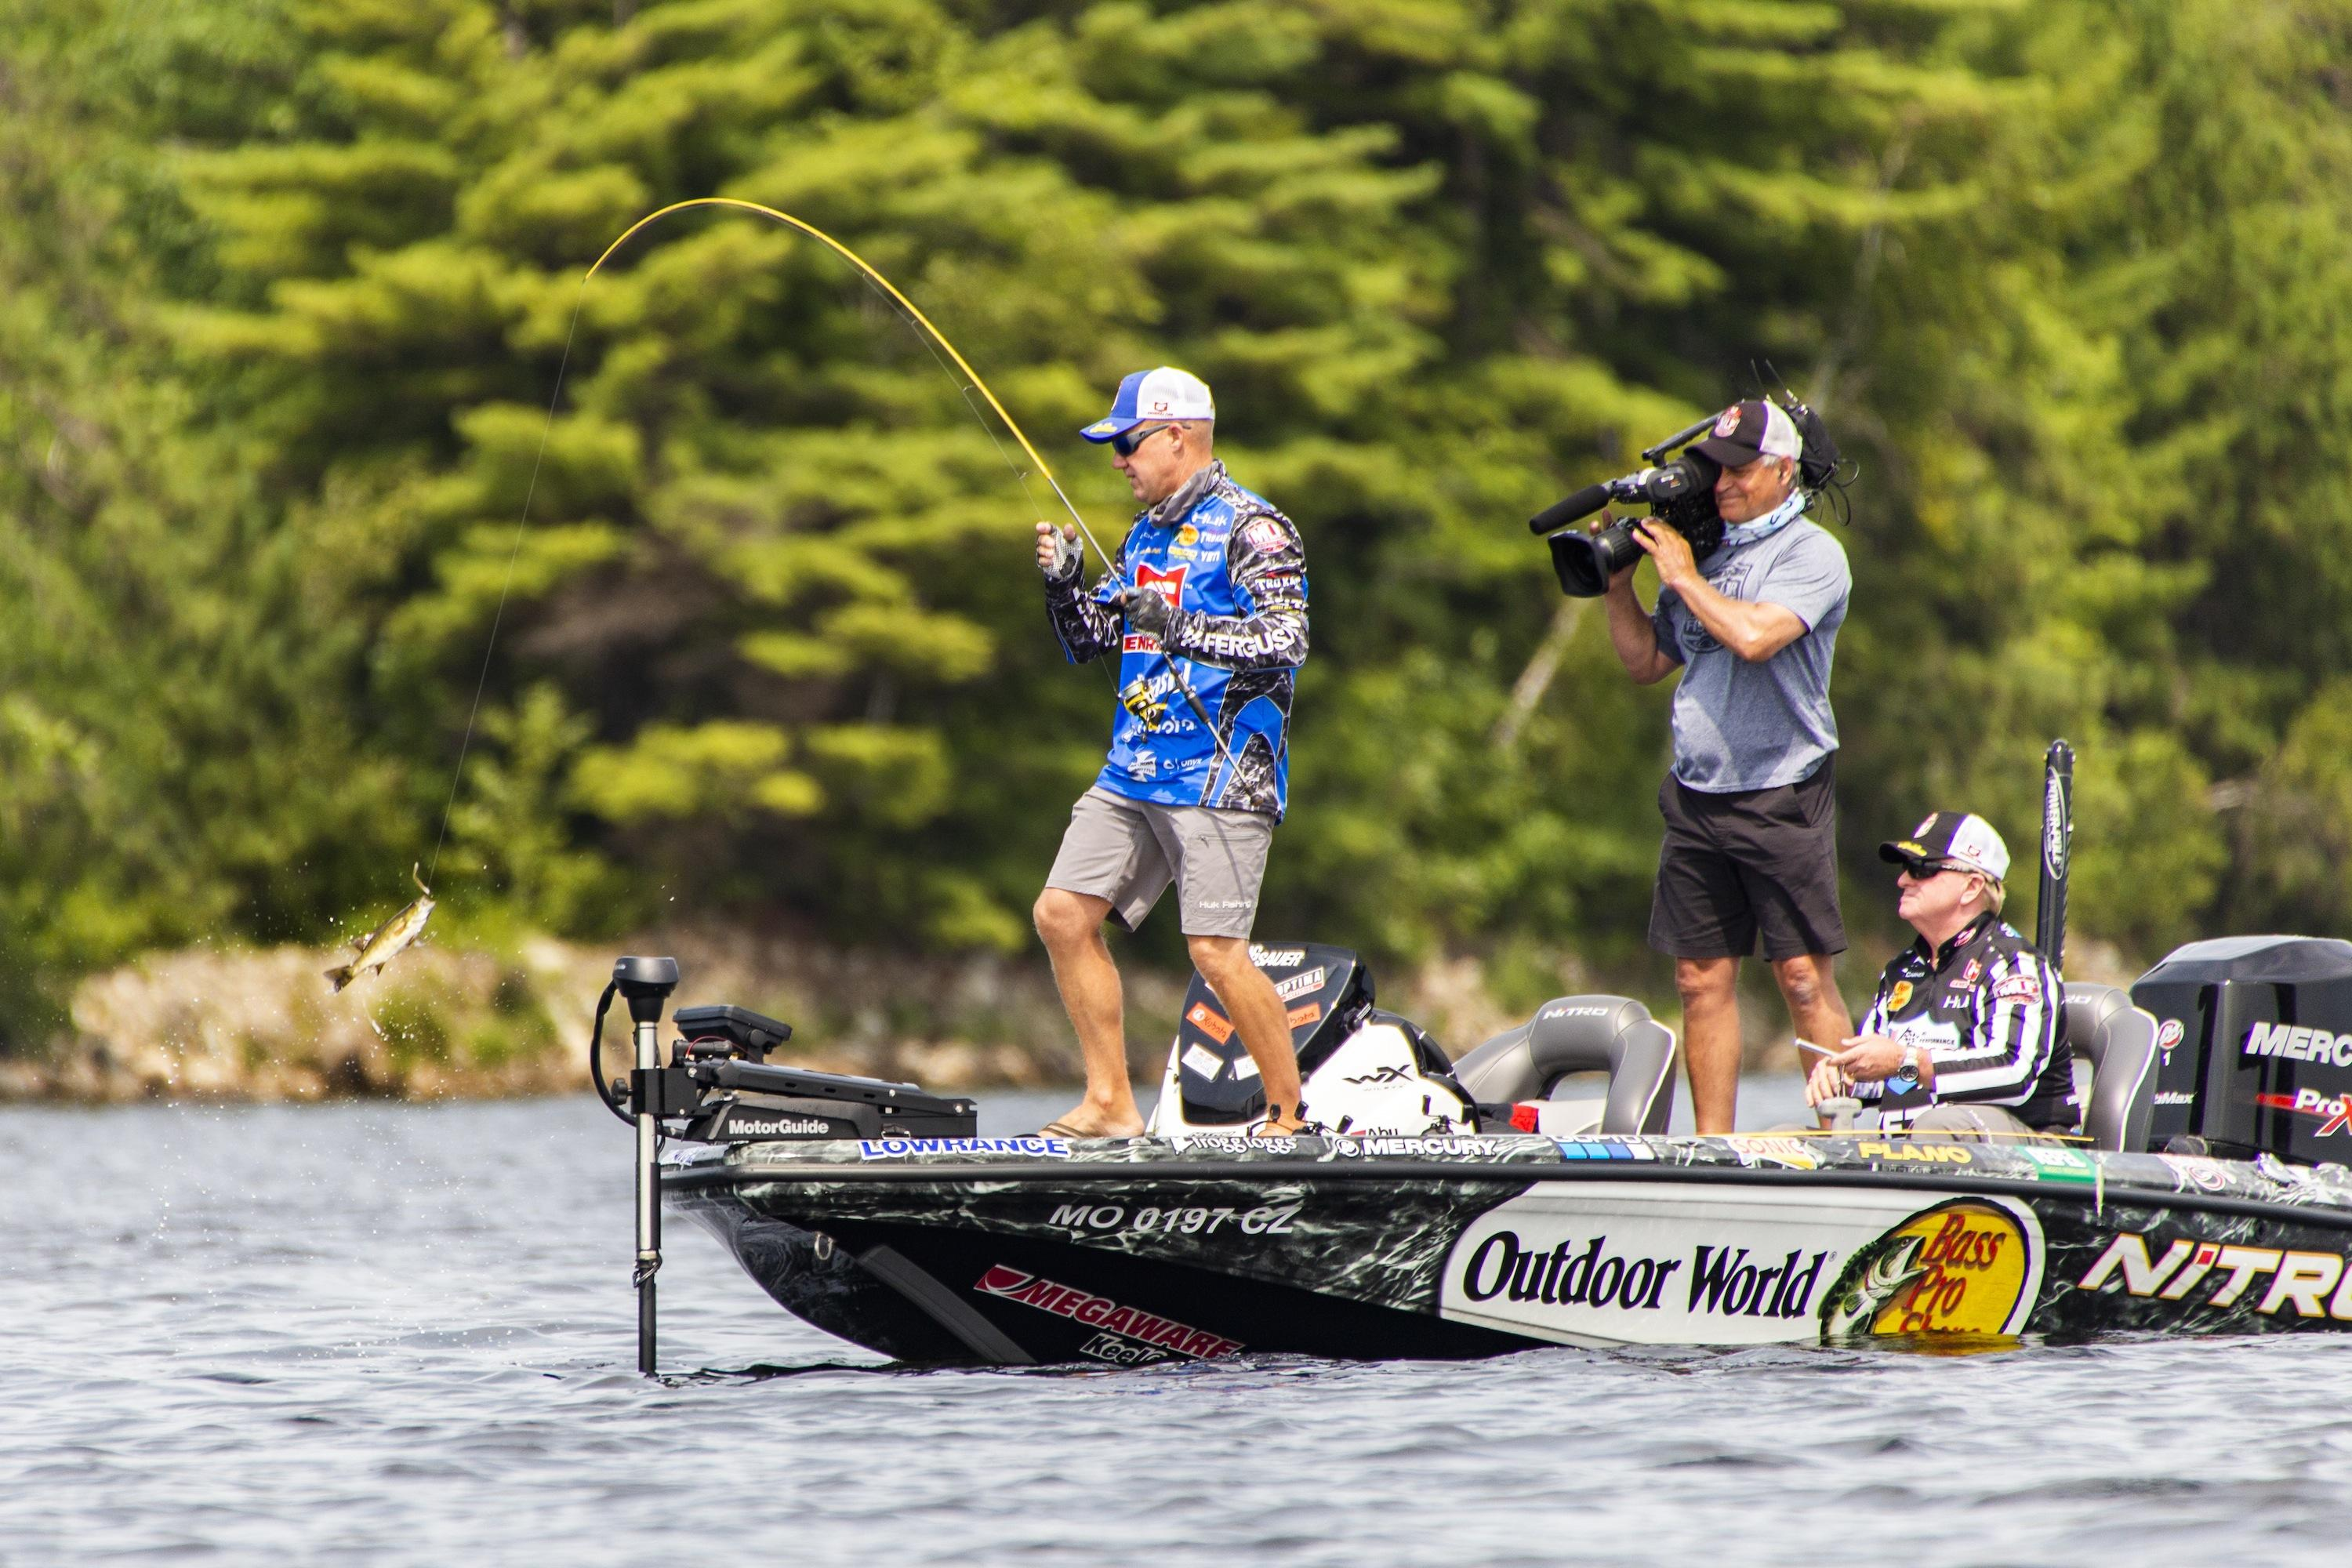 acf7e809a83 After the initial announcement of the Major League Fishing (MLF) Bass Pro  Tour last week